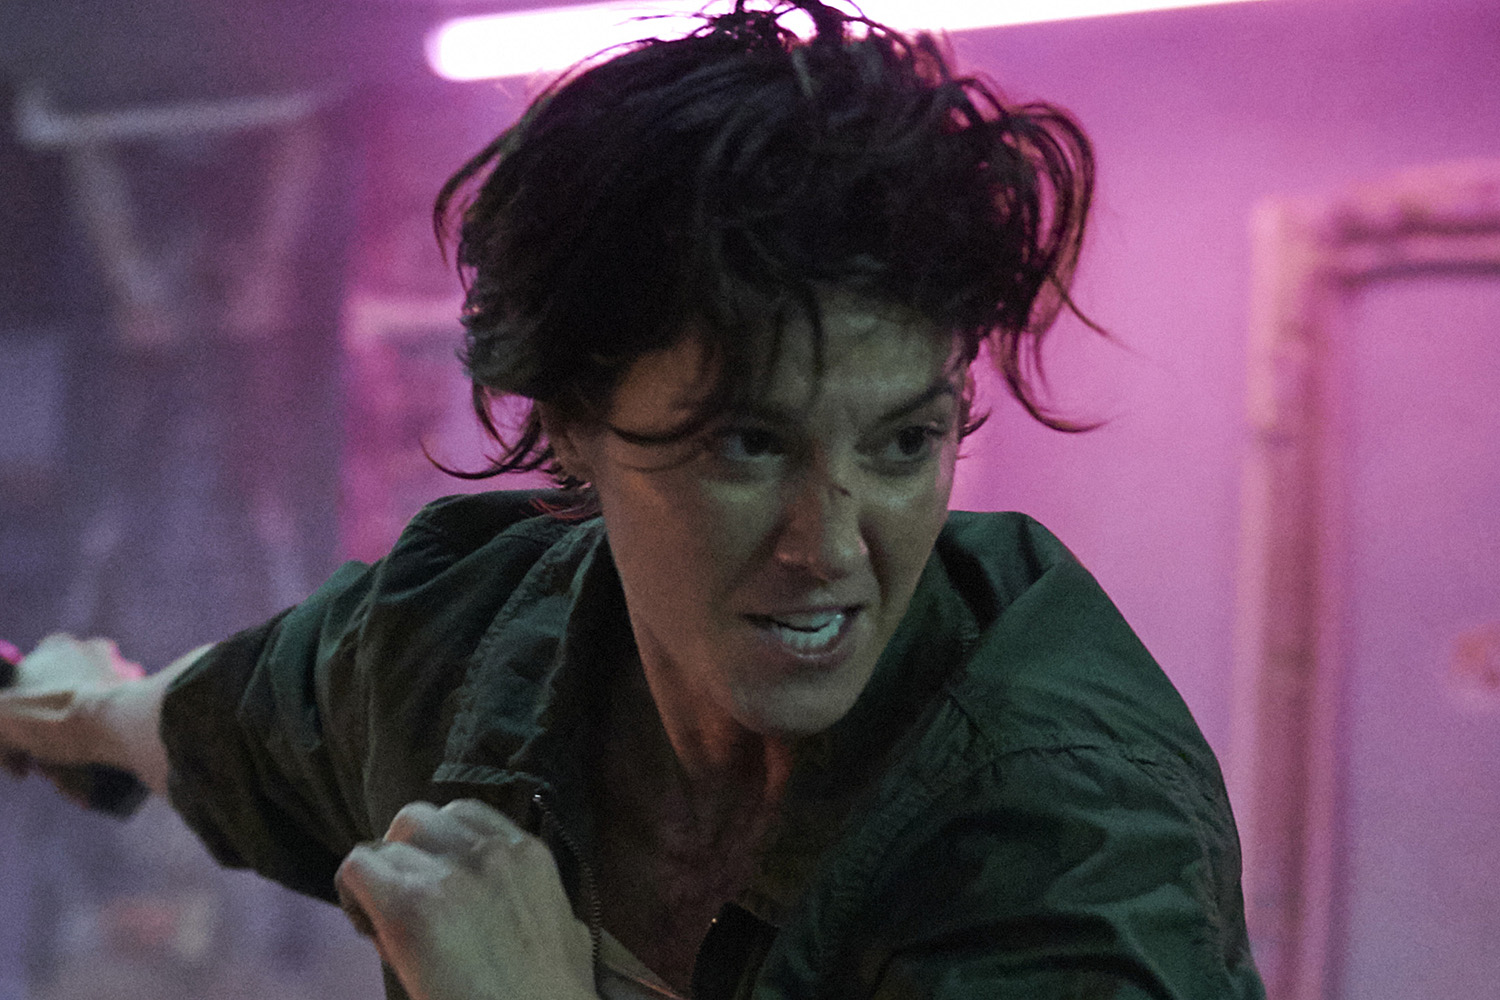 Kate review: Mary Elizabeth Winstead leads Netflix's red-meat female  assassin thriller   EW.com